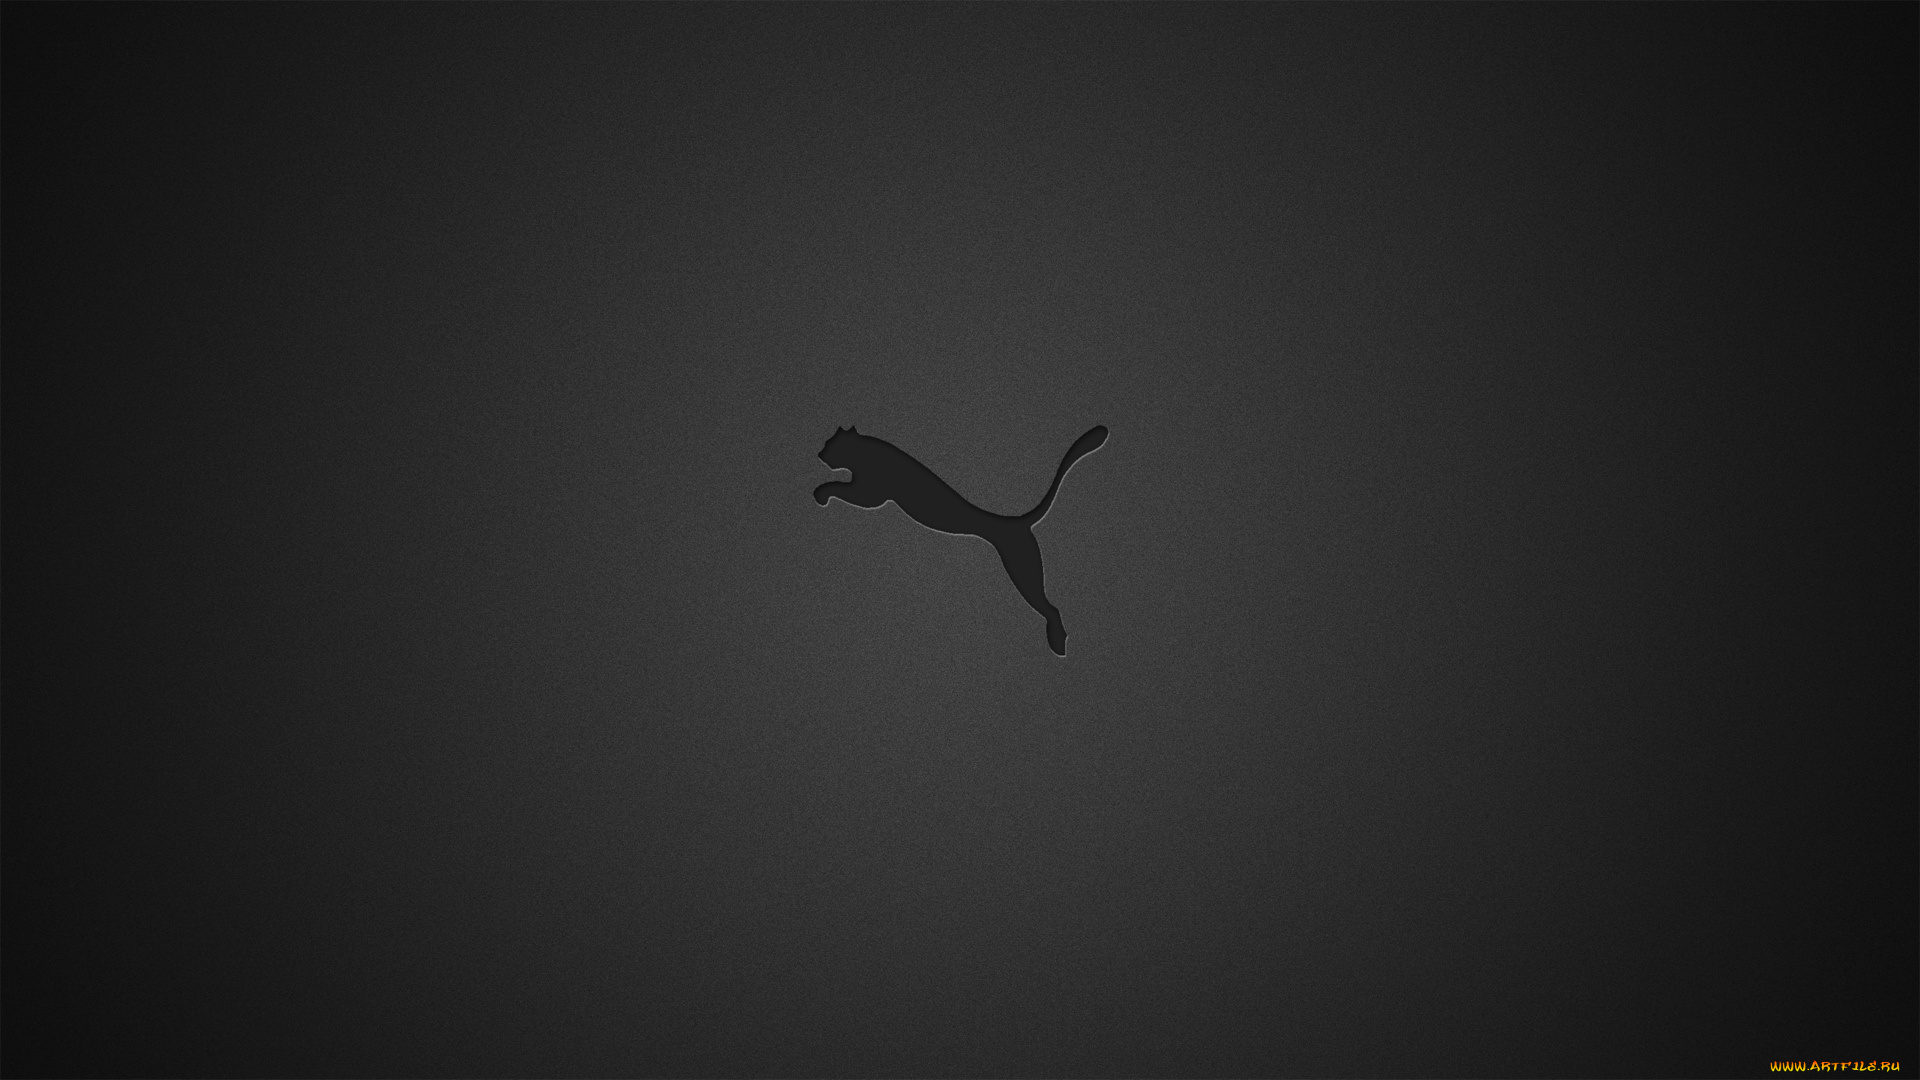 puma wallpaper iphone - HD 1920×1080